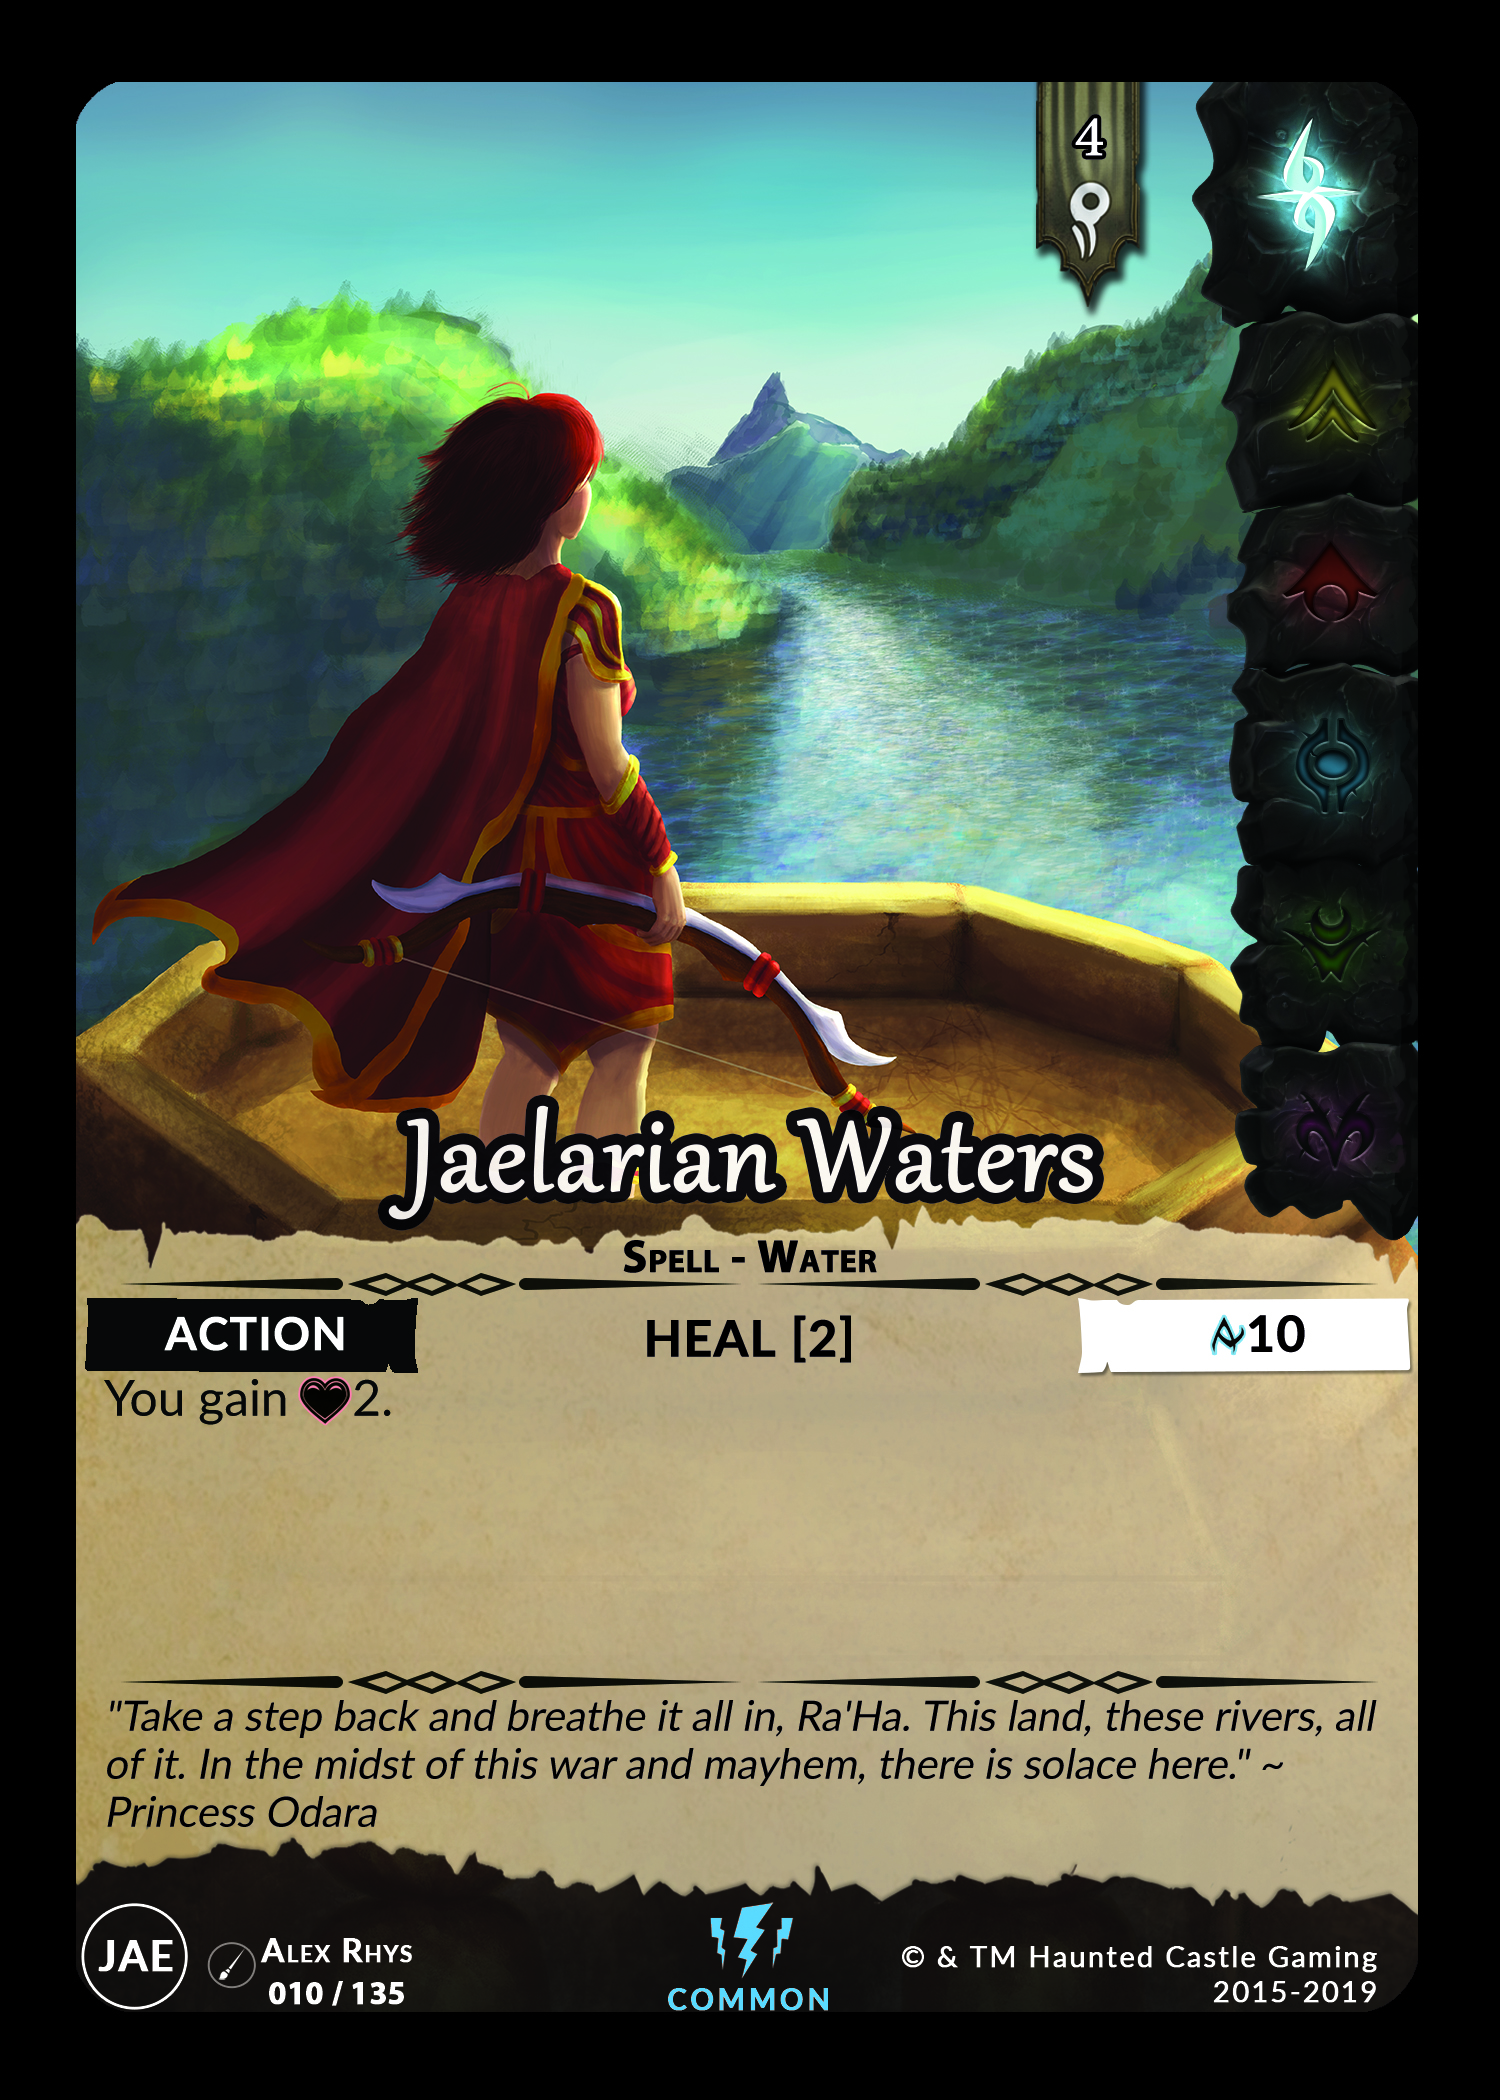 010-Jaelarian Waters.jpg